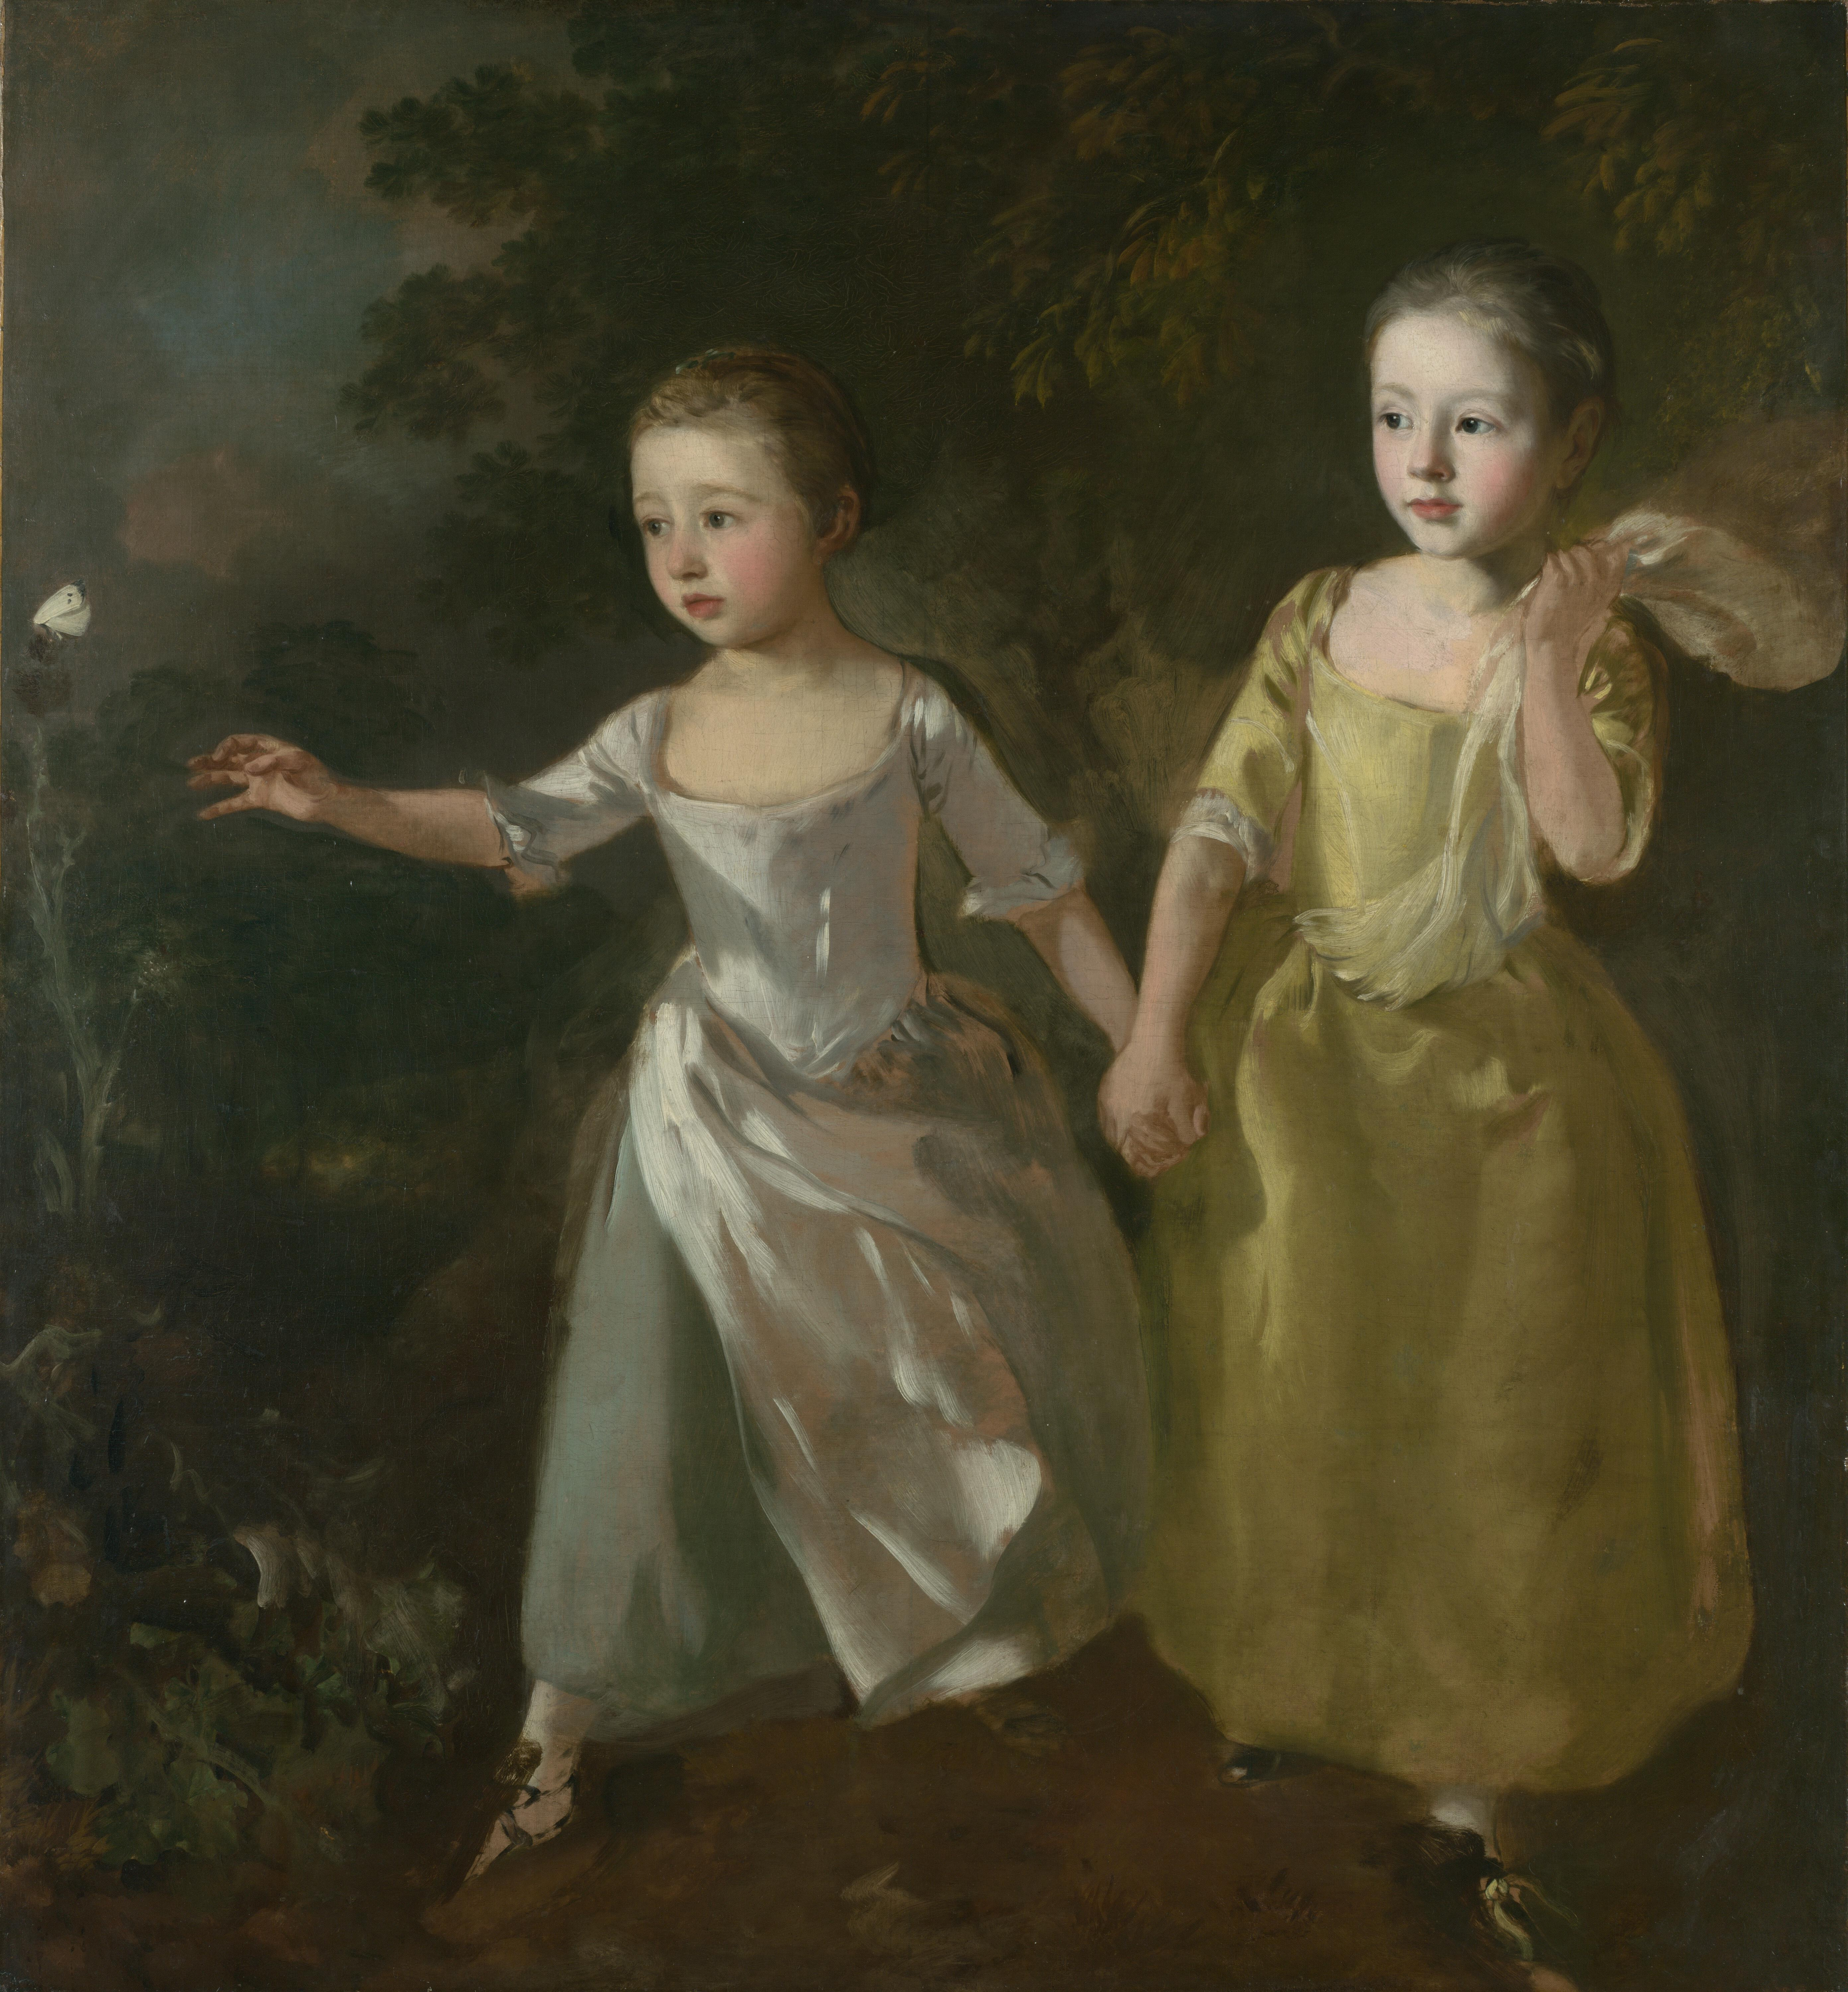 https://upload.wikimedia.org/wikipedia/commons/7/76/File-Gainsborough_-_The_Painters_Daughters_Chasing_a_ButterflyHD.jpg